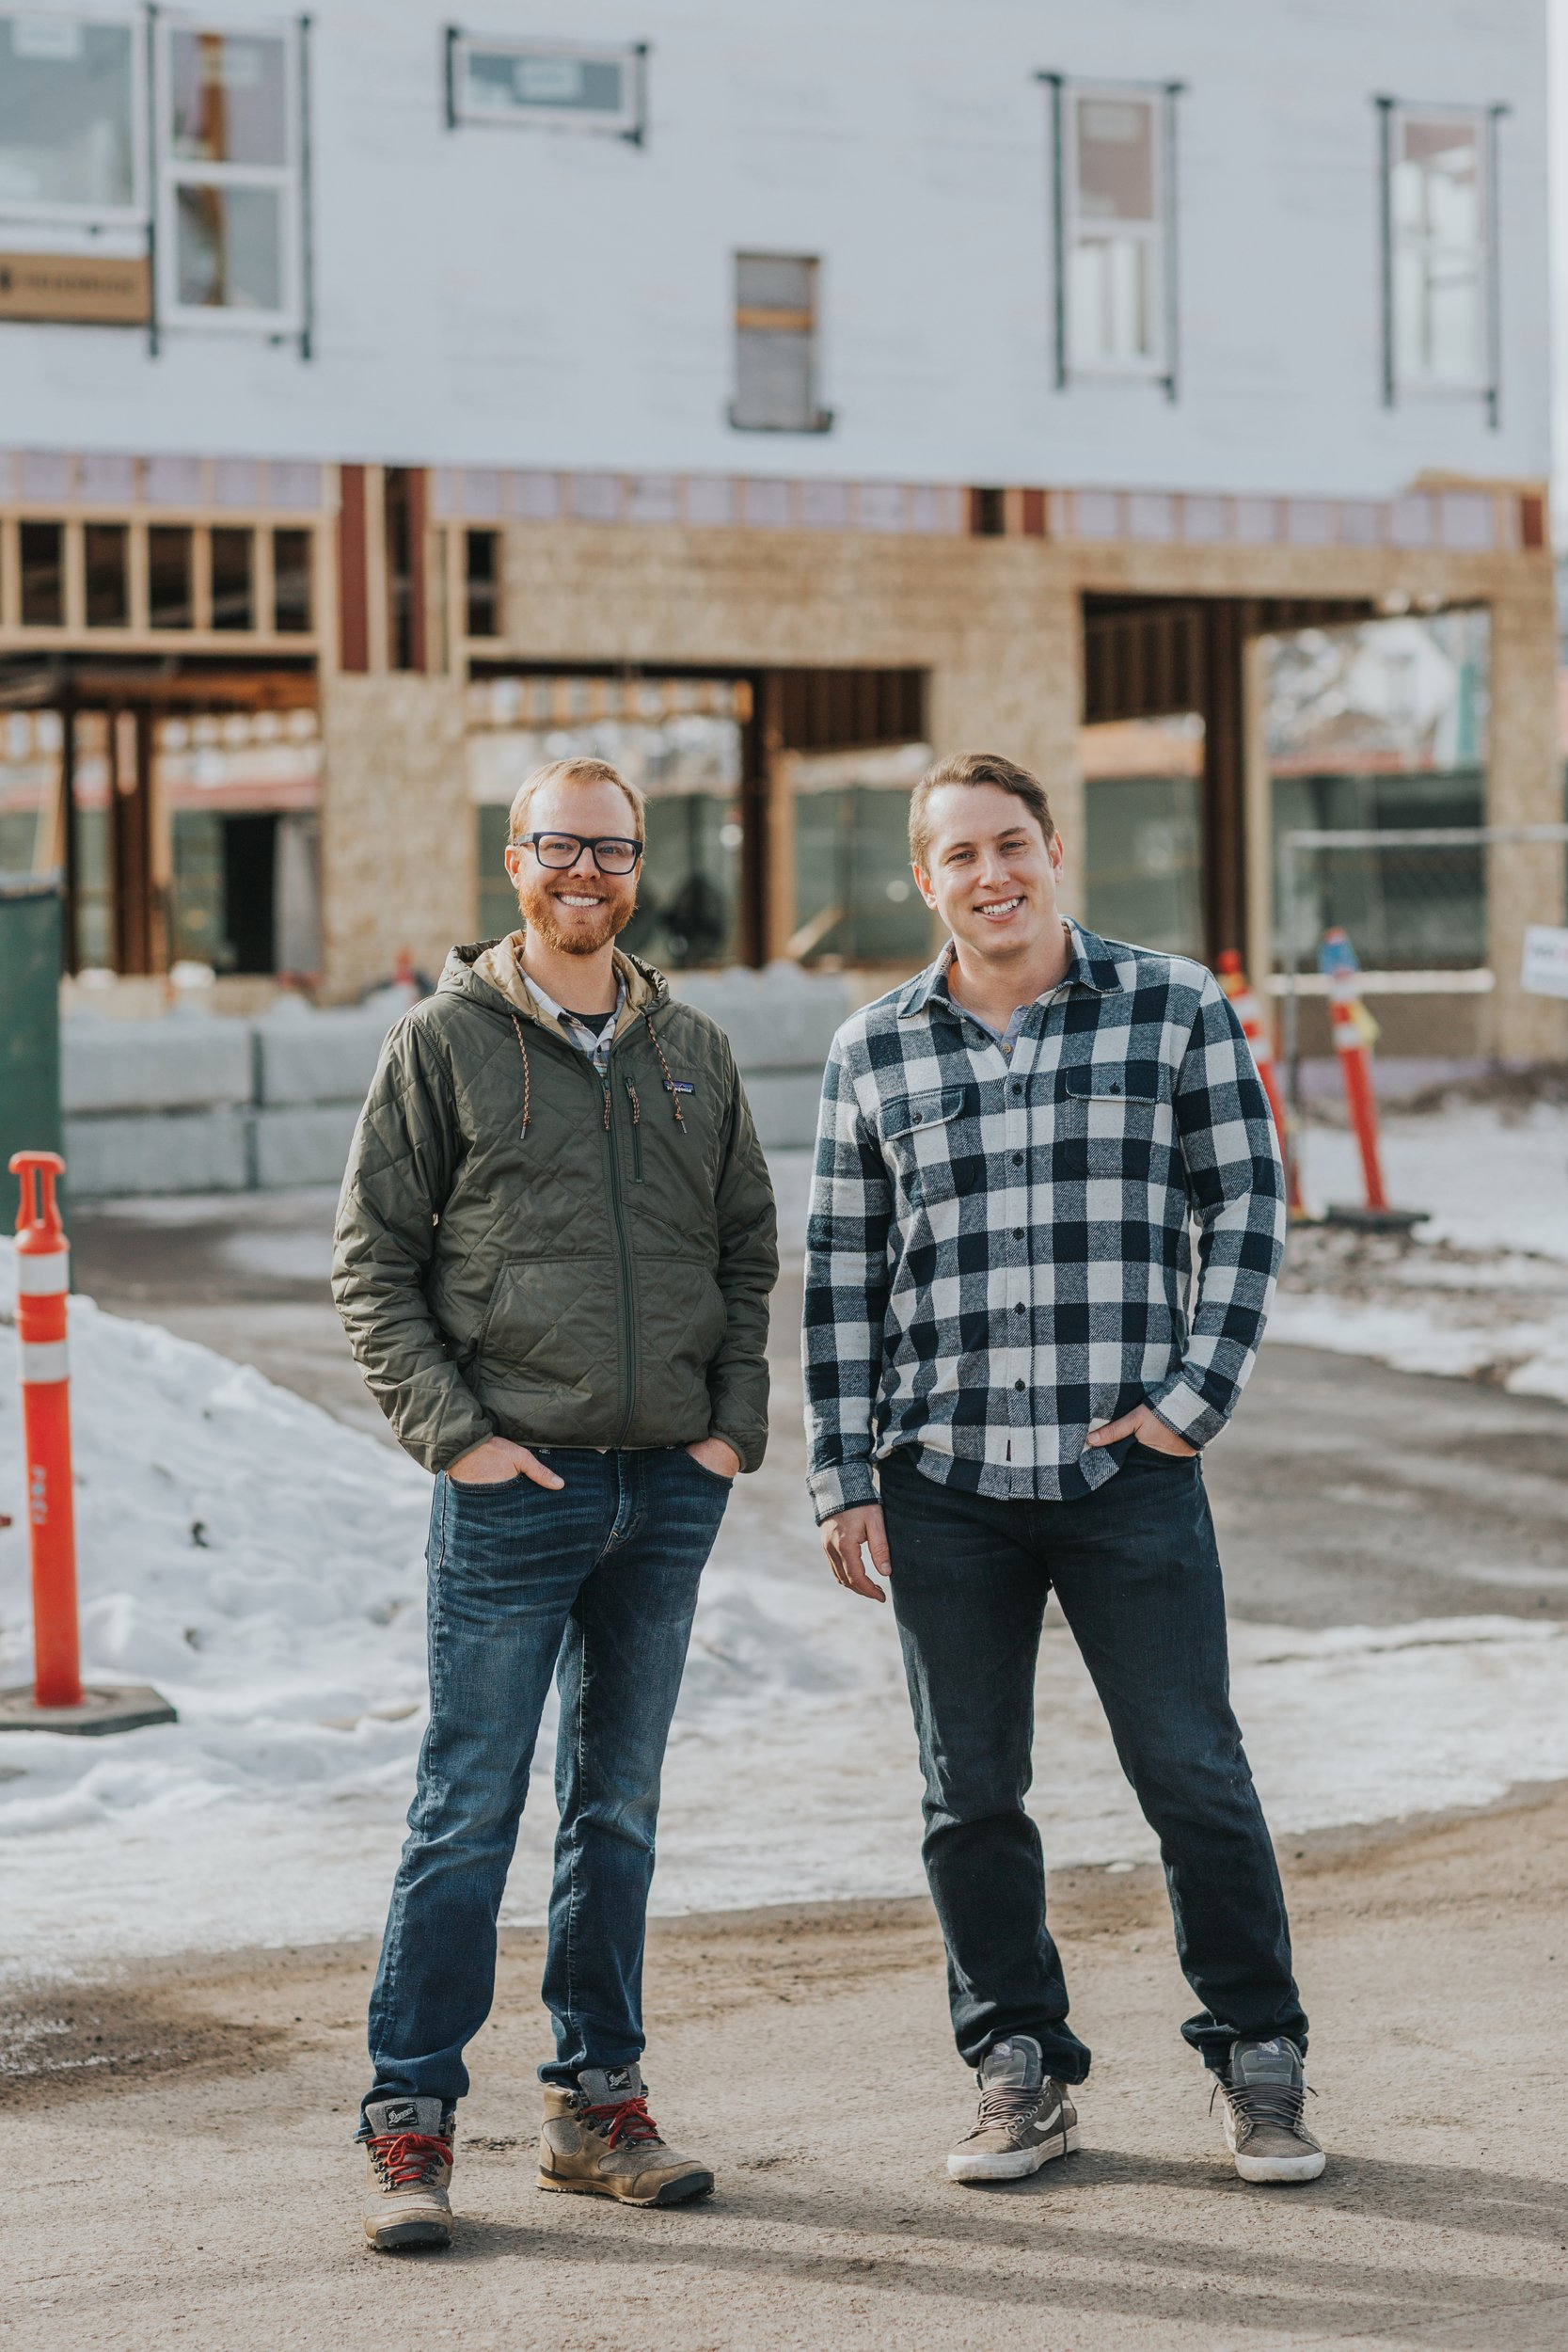 Mark Hardin (left) and David Eisenson (right) stand on Colorado Avenue in front of the partially-constructed building that will house their deli, Plosky's, which will feature bagels and lox, reubens, pastrami on rye and other classic New York sandwich fare. Photo by Olivia Emmer.